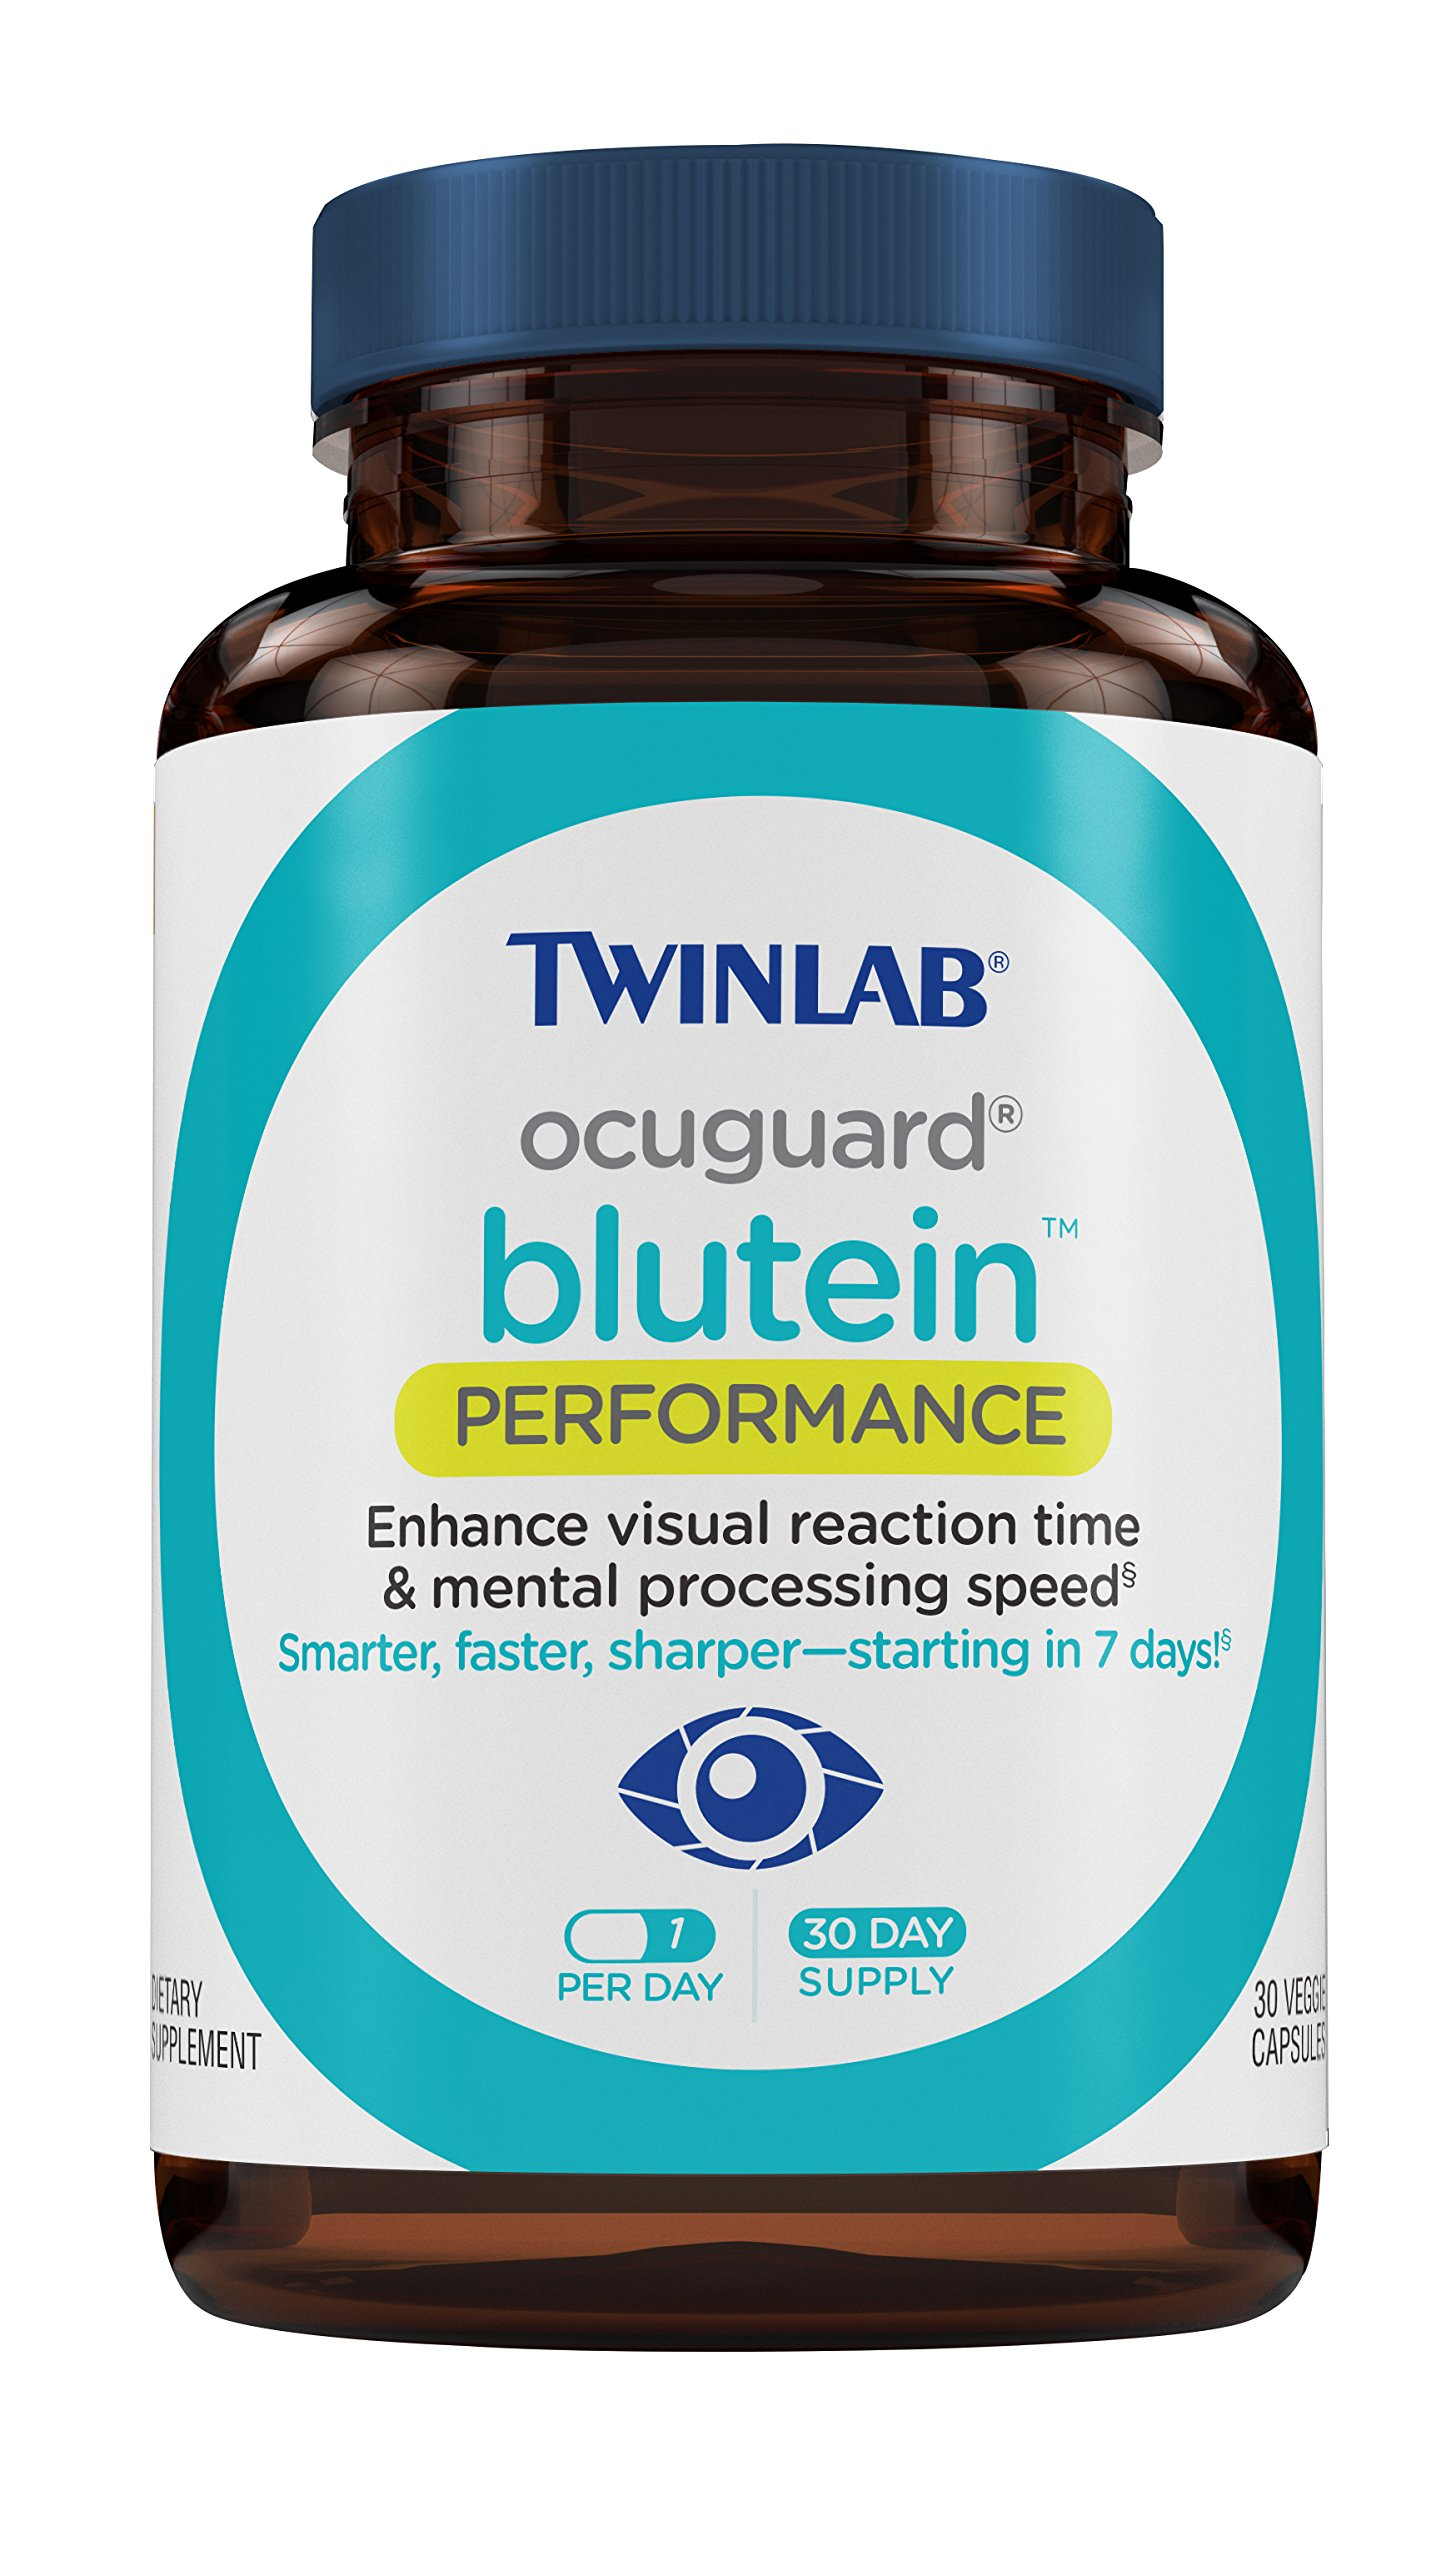 Twinlab Ocuguard Blutein Performance Capsules, 30 Count